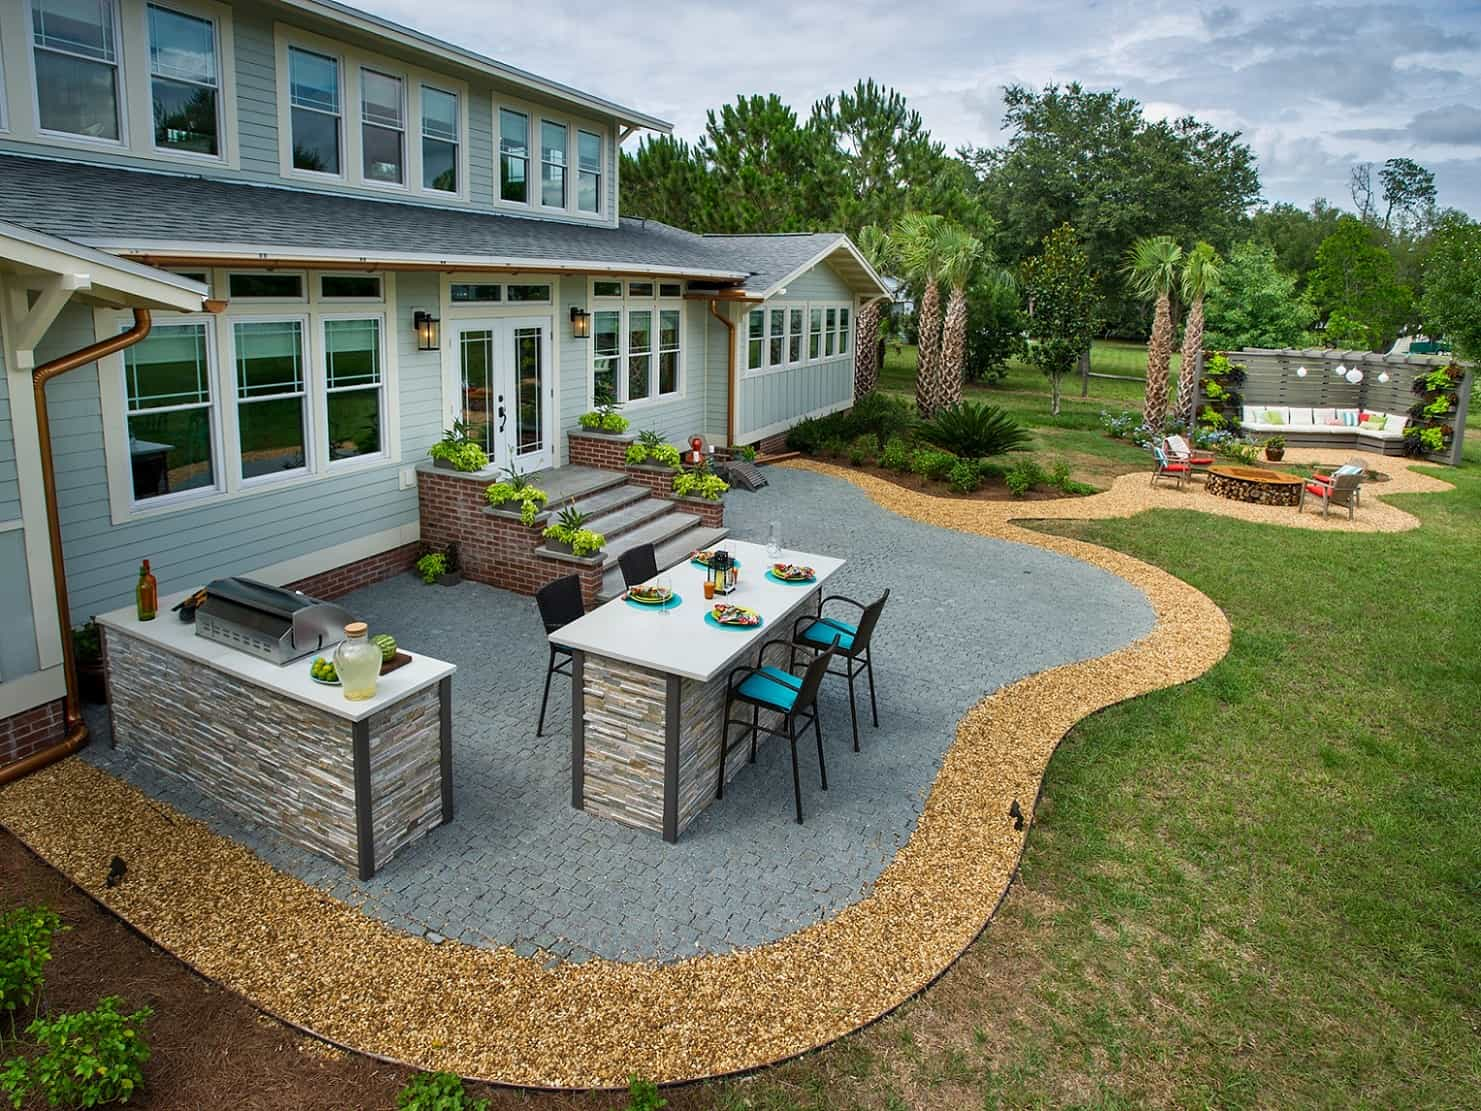 Fabulous Patios Designs That Will Leave You Speechless ... on Basic Patio Ideas id=55366